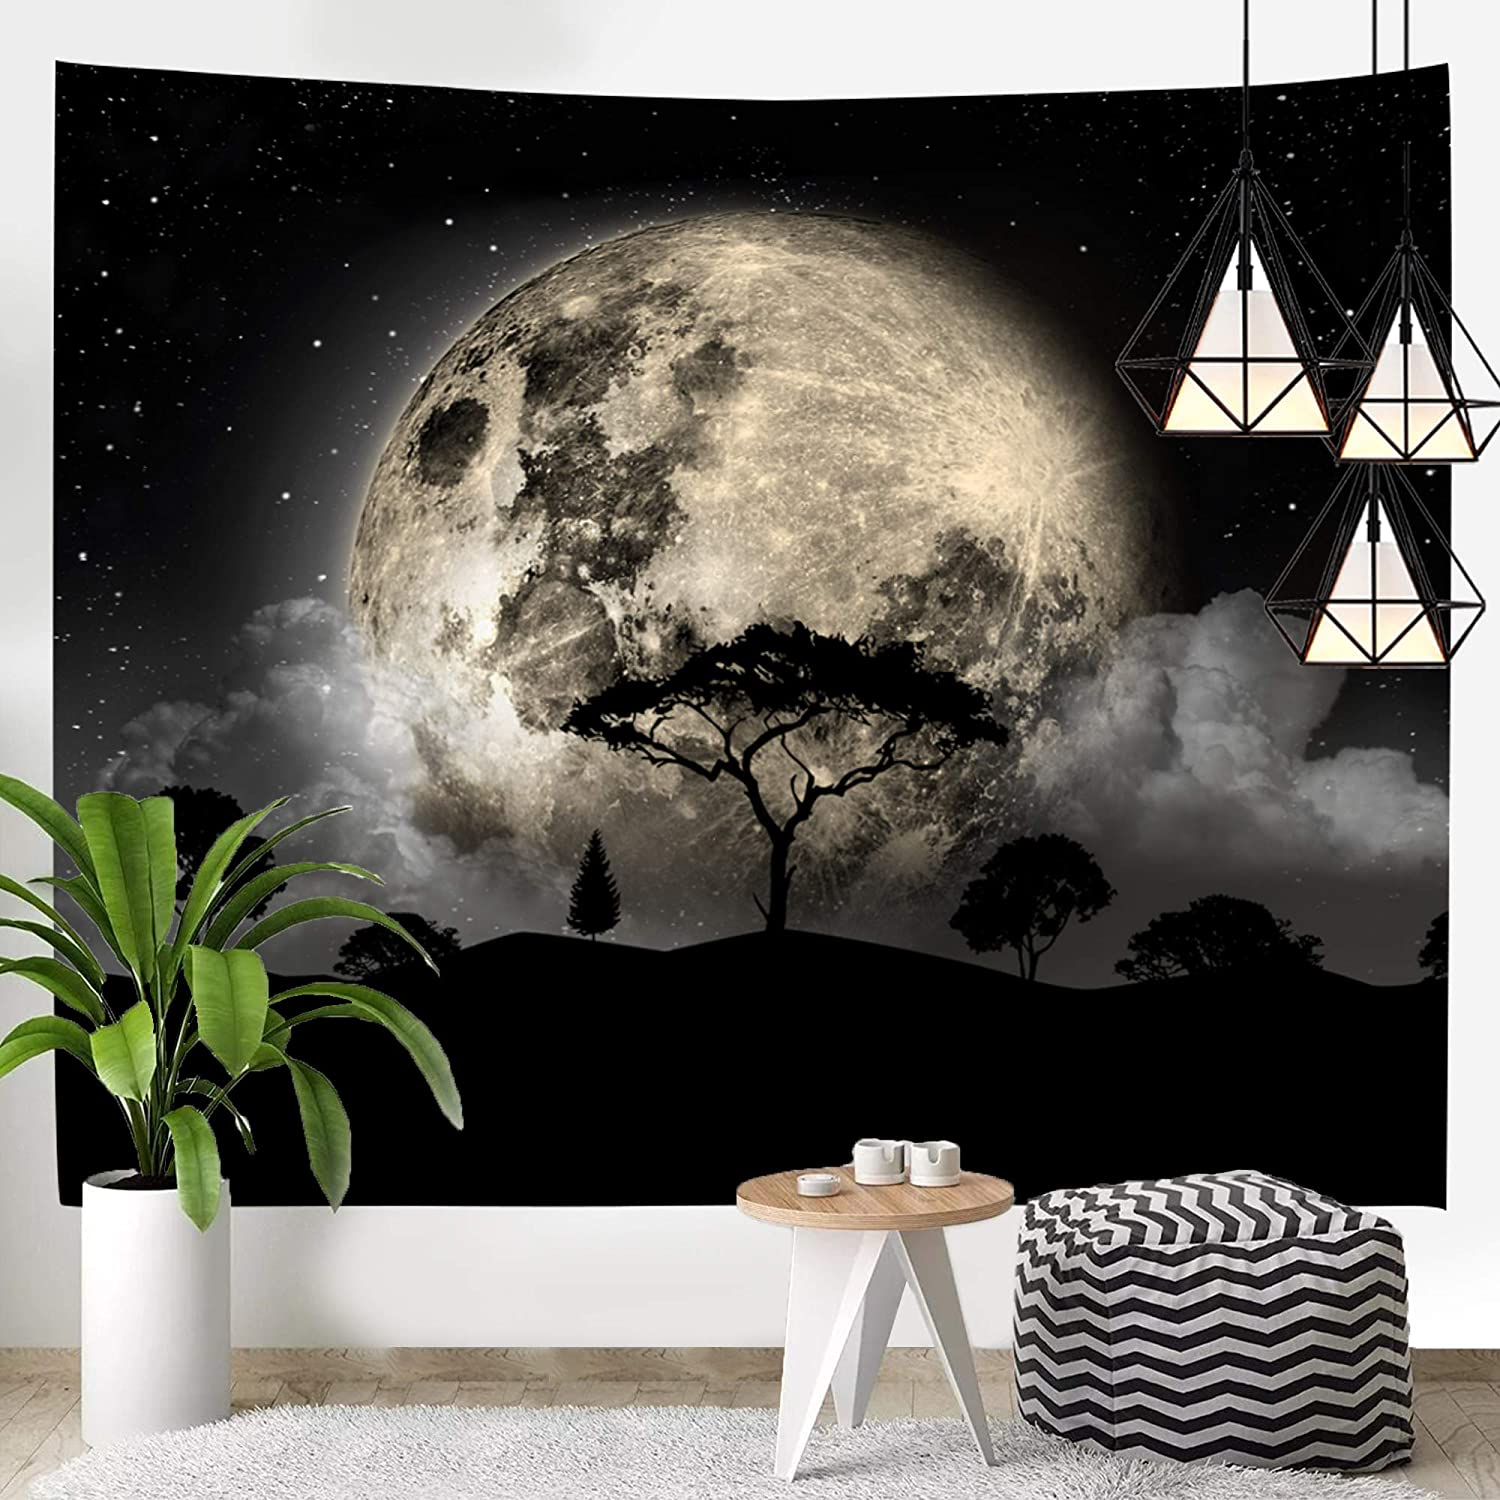 Kamalove Moon Tapestries, Galaxy Tapestry Wall Hanging Decor Psychedelic Wall Art, Aesthetic Star Tree Wall Tapestry for Bedroom Dorm Room Decor, 59